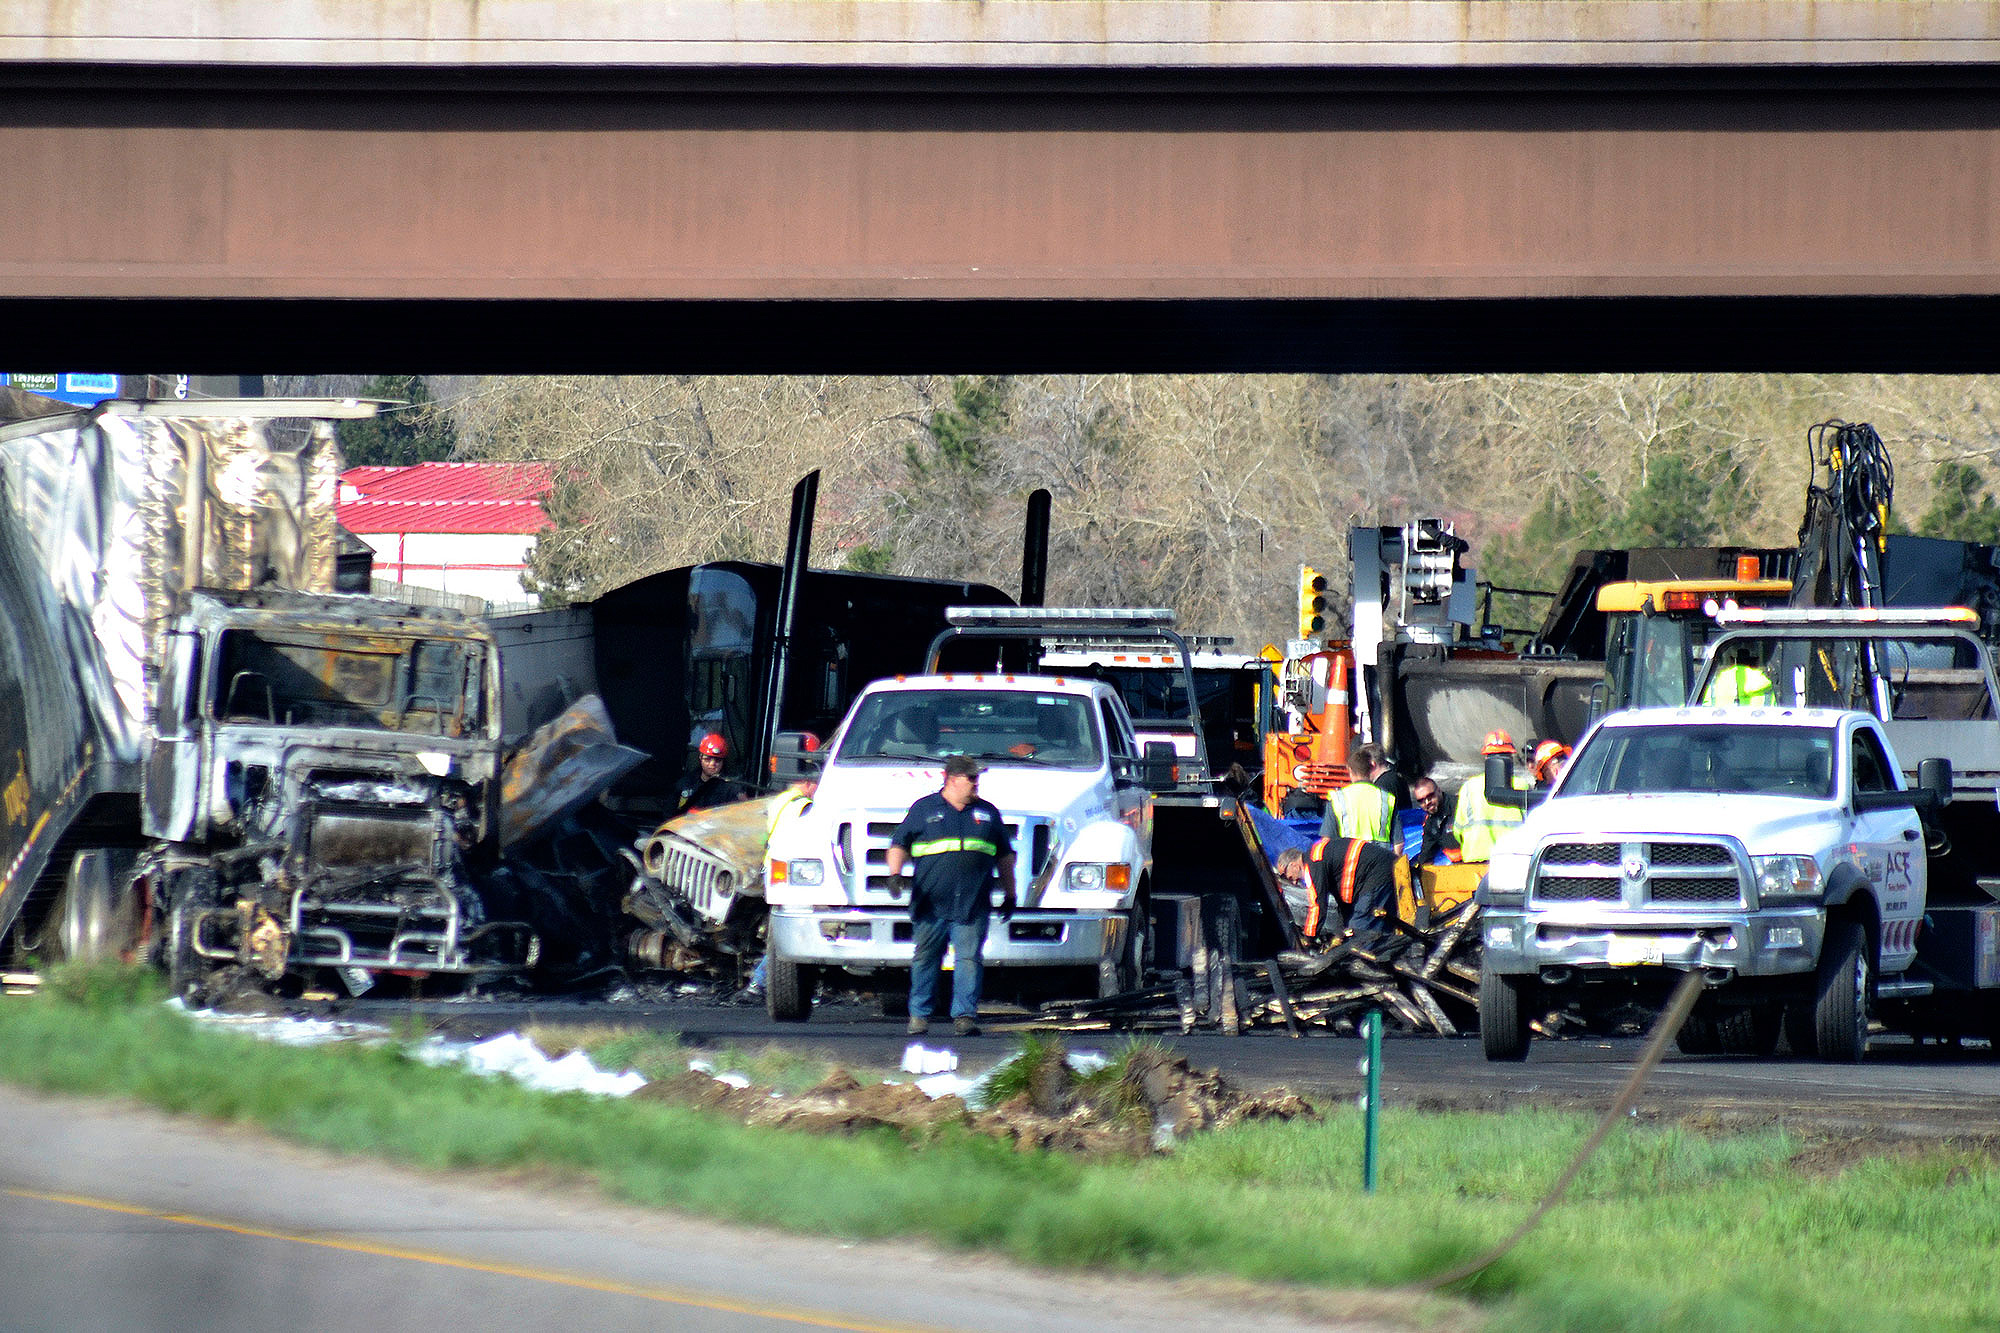 Photo: Wreckage 4 People Die In I-70 Crash Lakewood